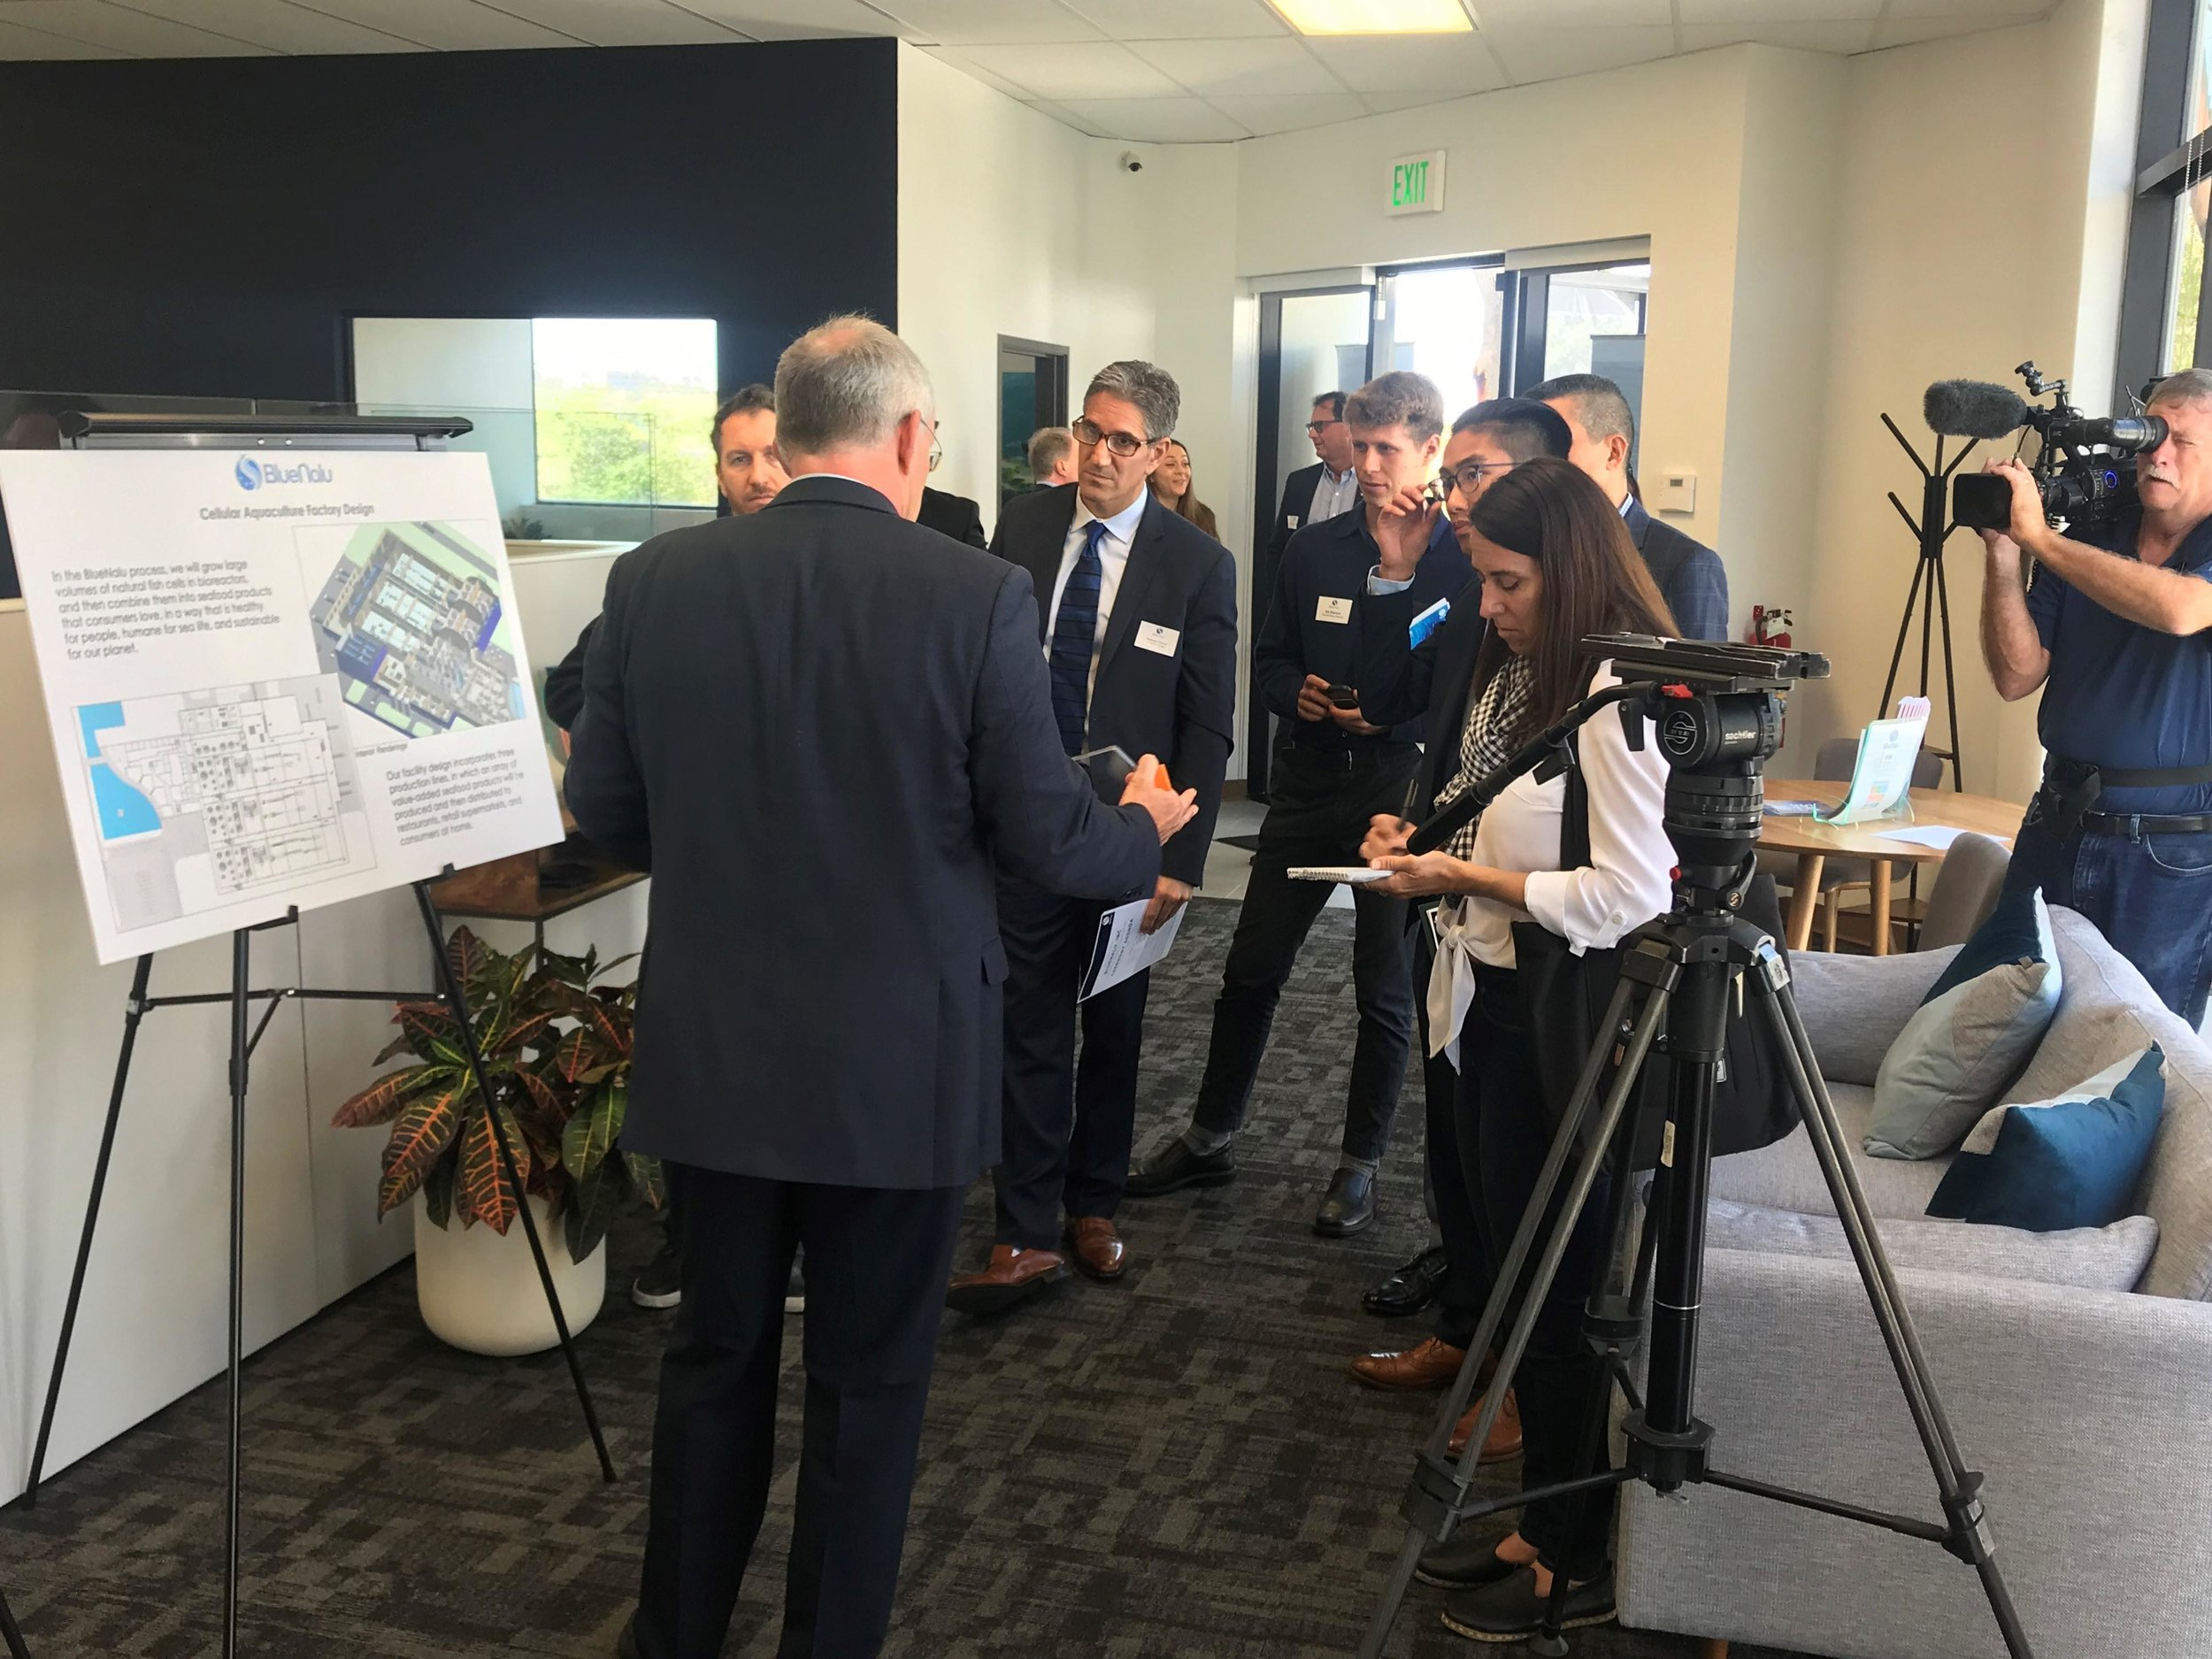 Behind the scenes at the BlueNalu Ribbon Cutting Ceremony, Earth Day, April 22, 2019. Bert Frohlich, VP Process Engineering, discusses commercialization plans with the media.